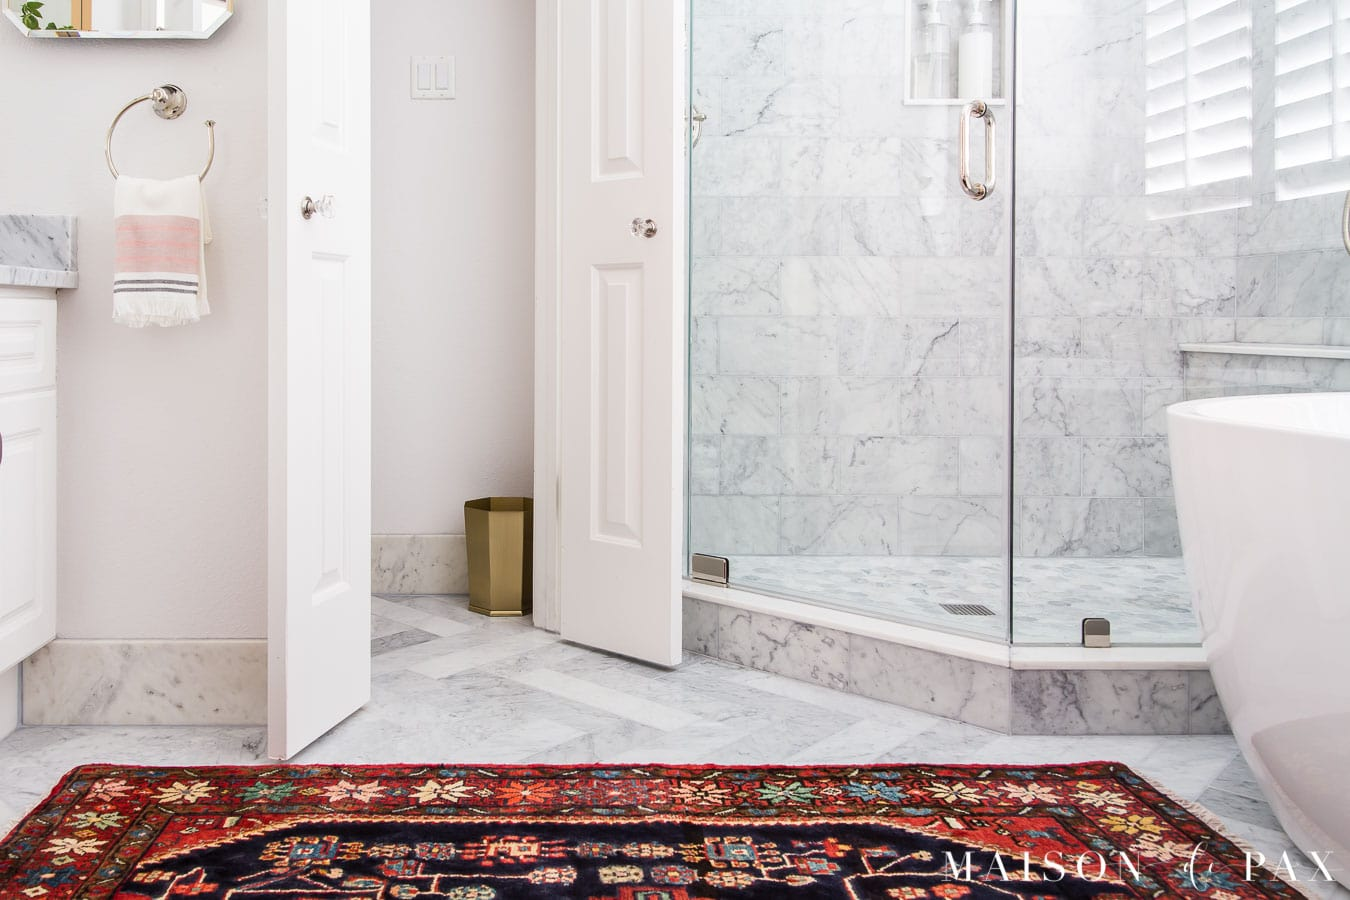 marble floors and marble baseboards in master bath | Maison de Pax